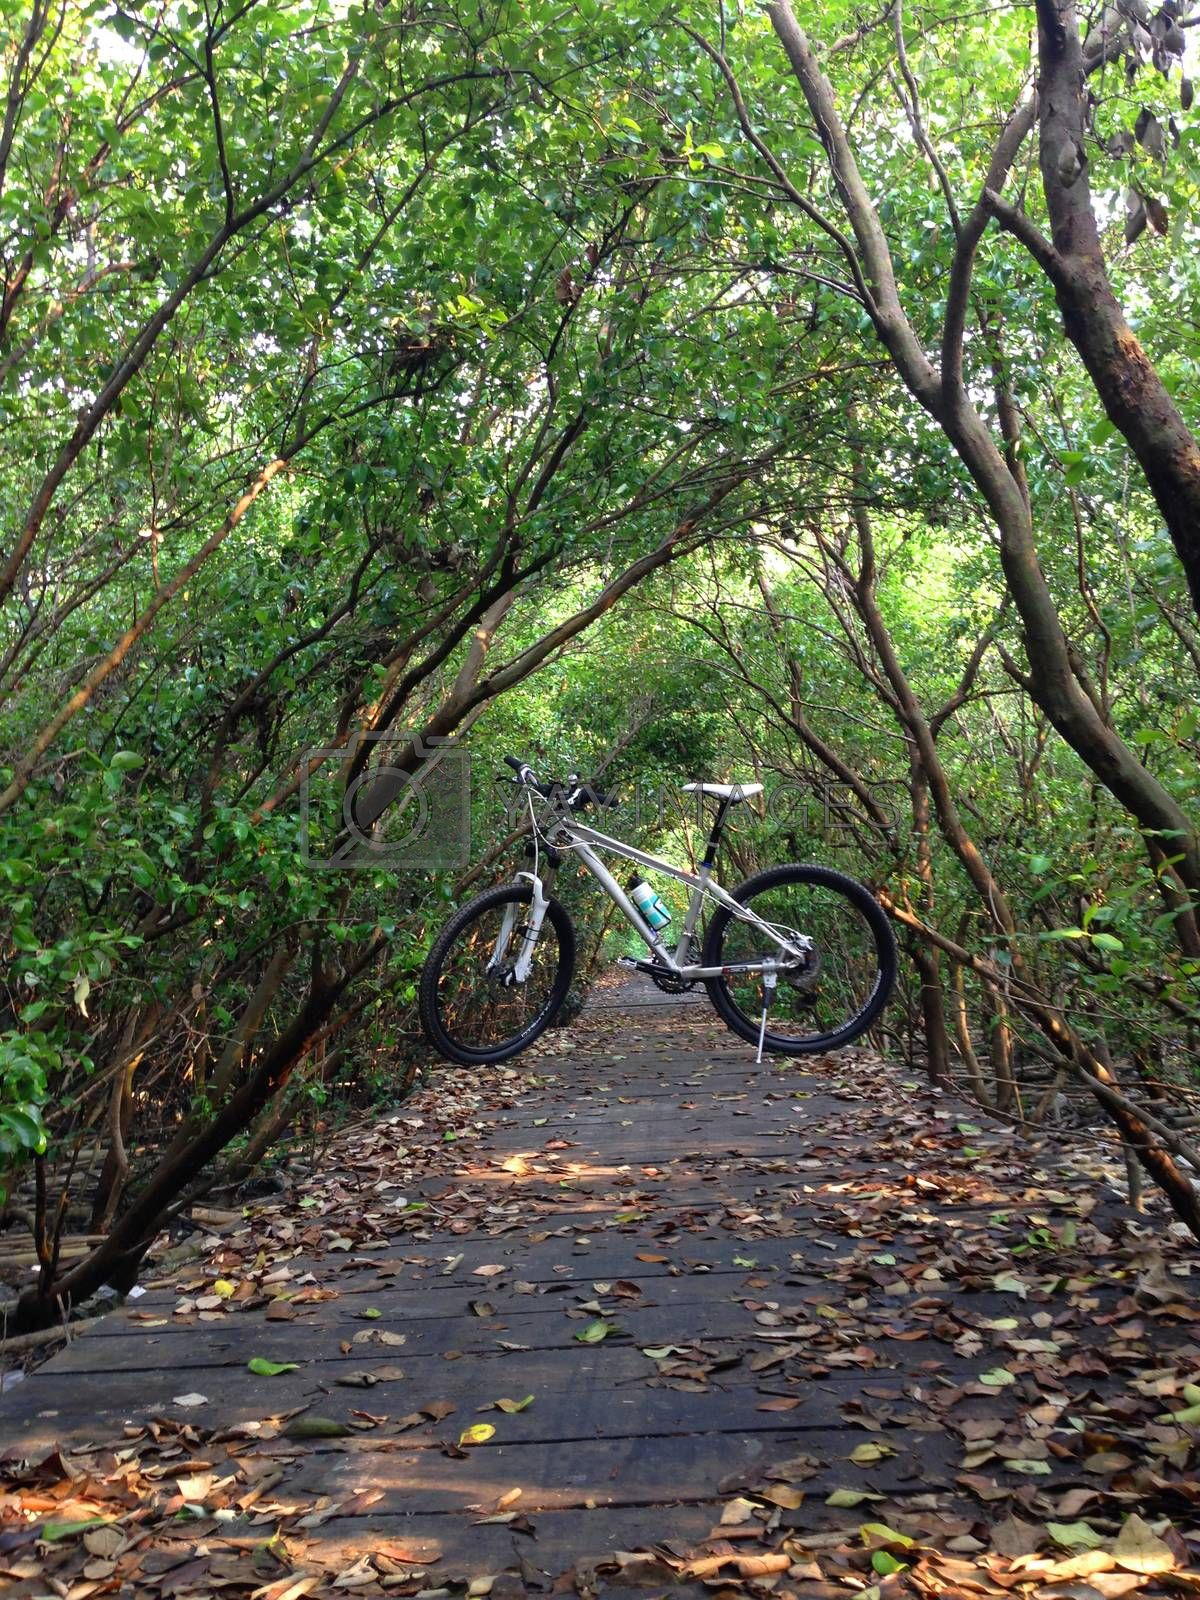 Royalty free image of the bike on a wood path in forest by pandara